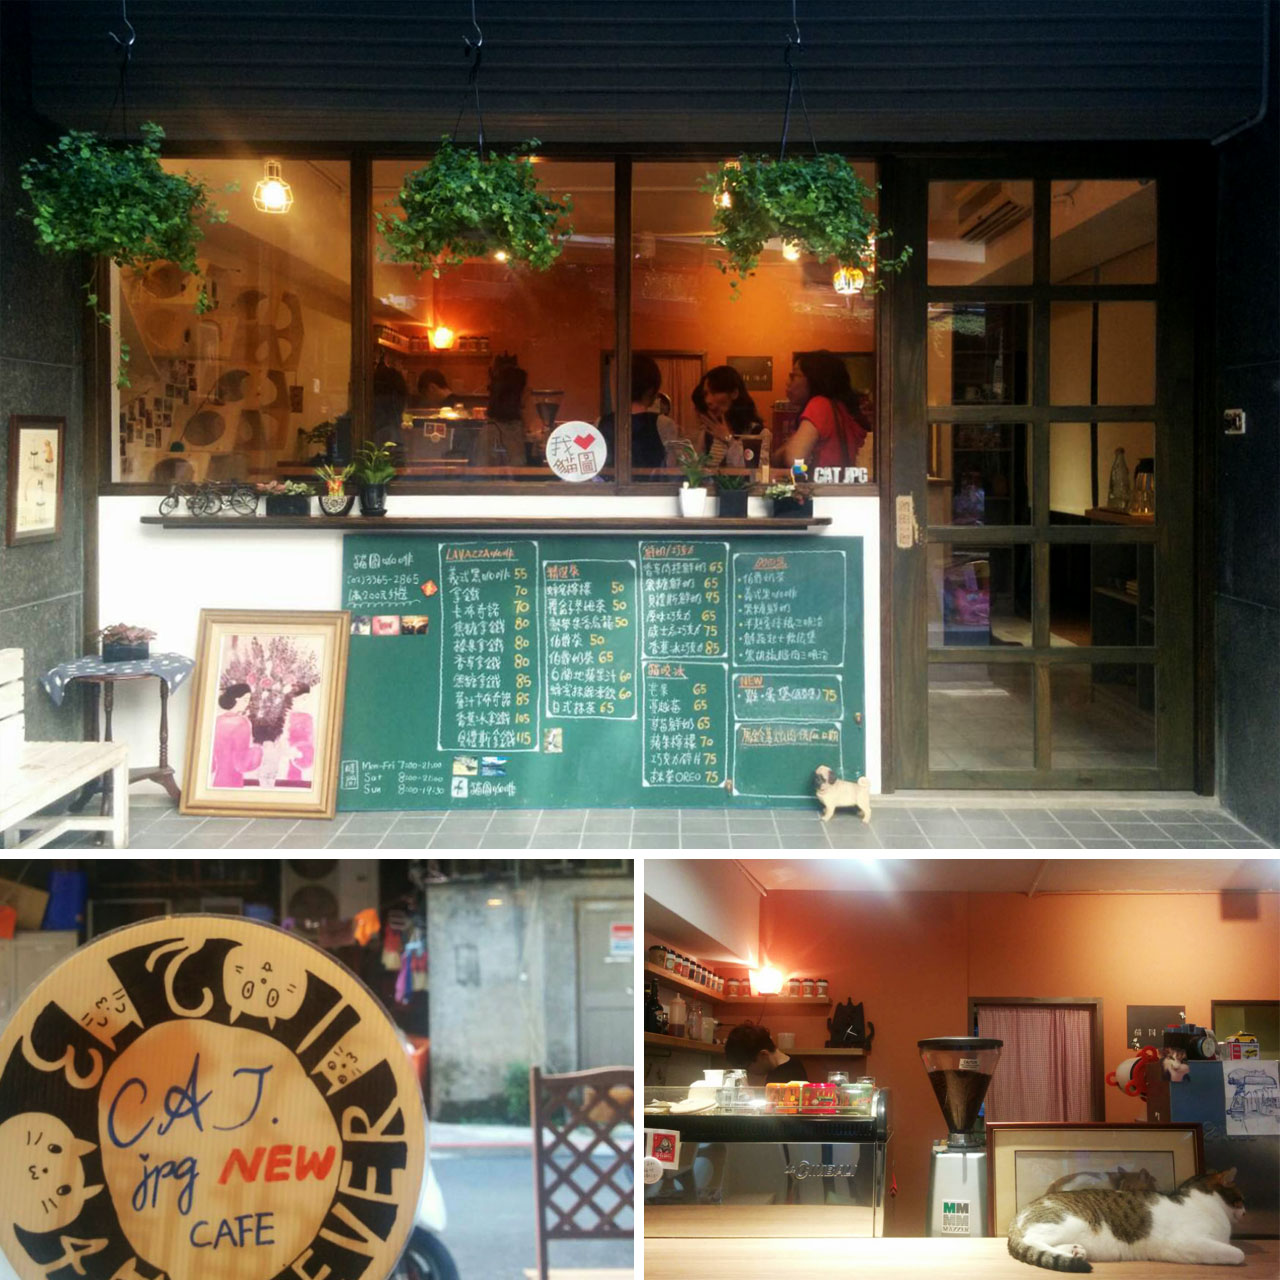 Photos of the new Cat.jpg Cafe